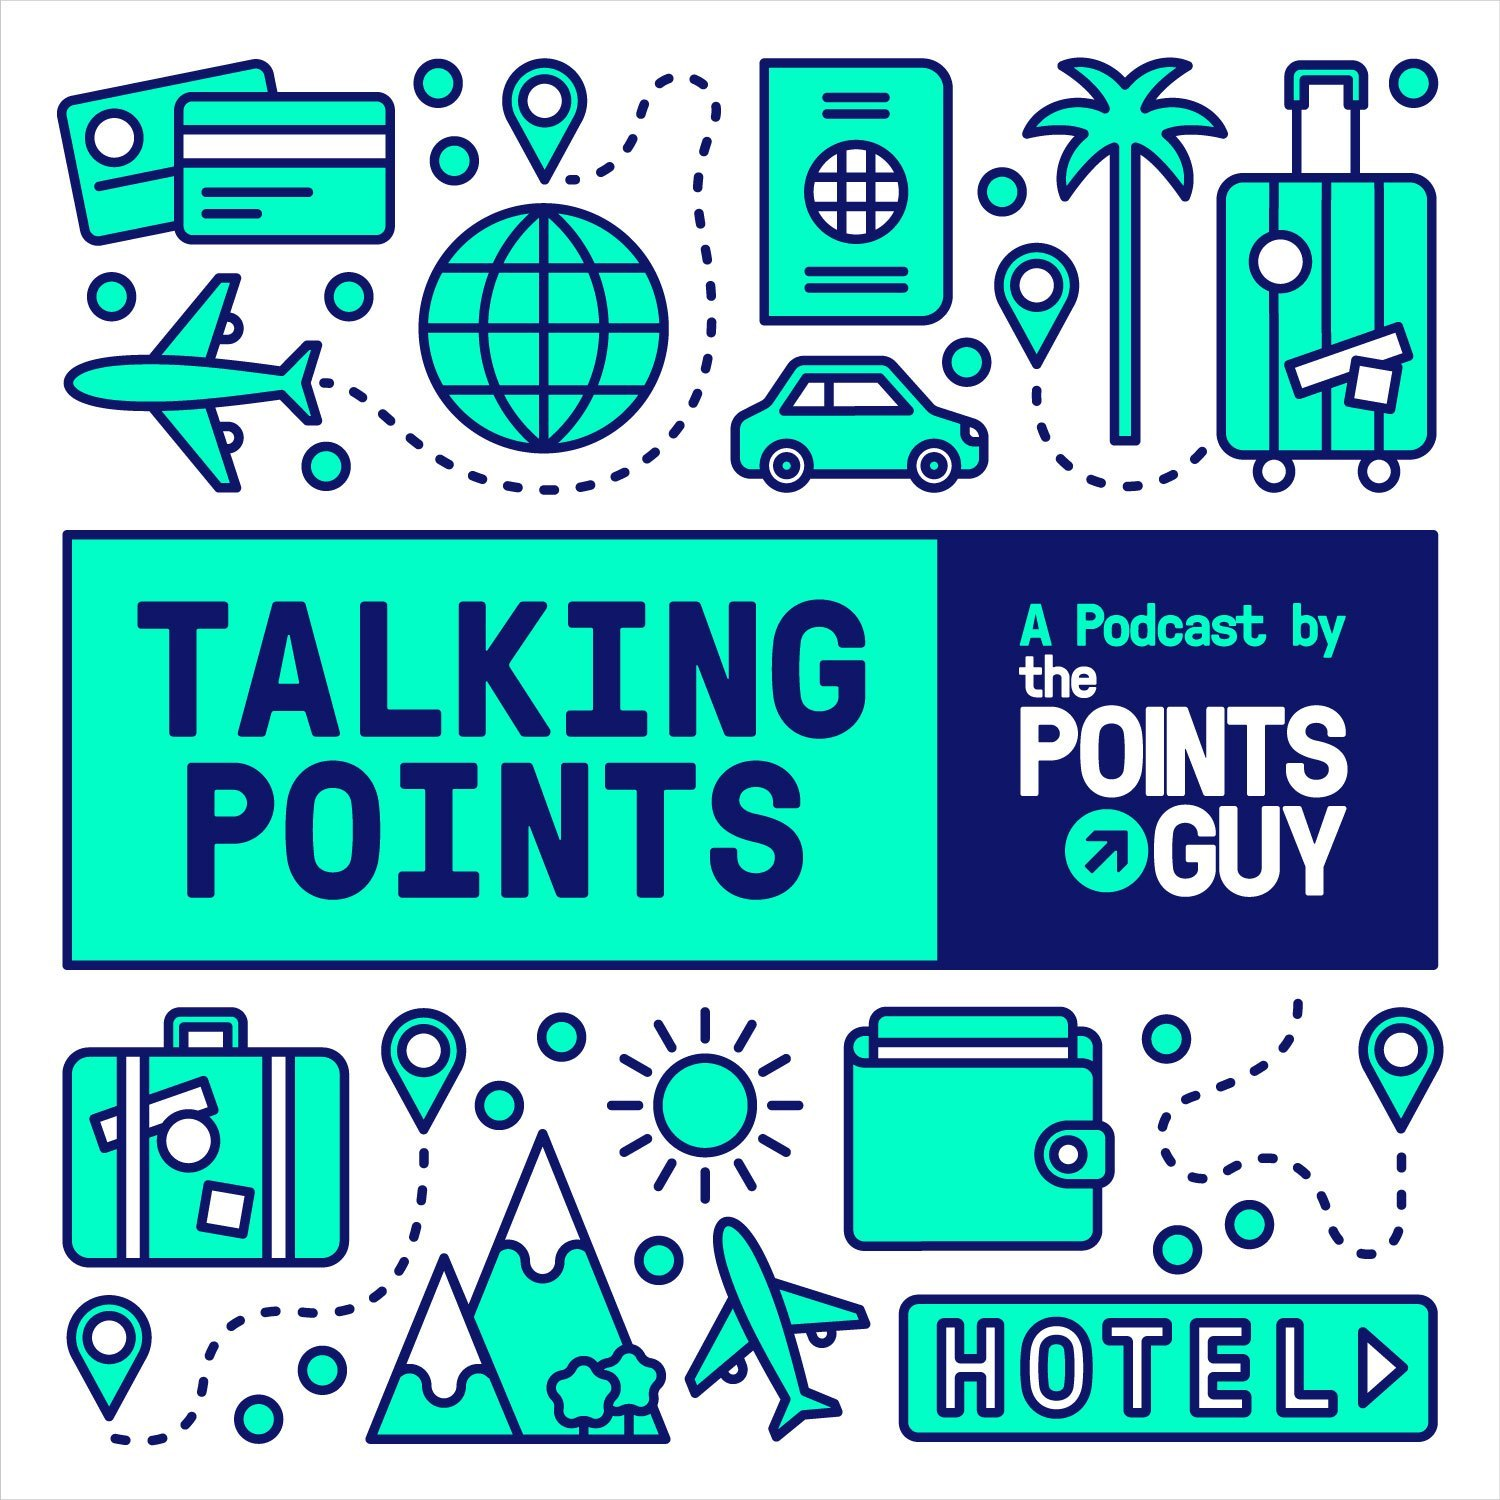 TALKING POINTS - This podcast is actually hosted by The Points Guy, aka Brian Kelly. Each week he talks to top executives in the points-and-miles world, influencers and TPG staff. The podcast gives you tangible tips to make you a smarter traveler and save some money along the way.